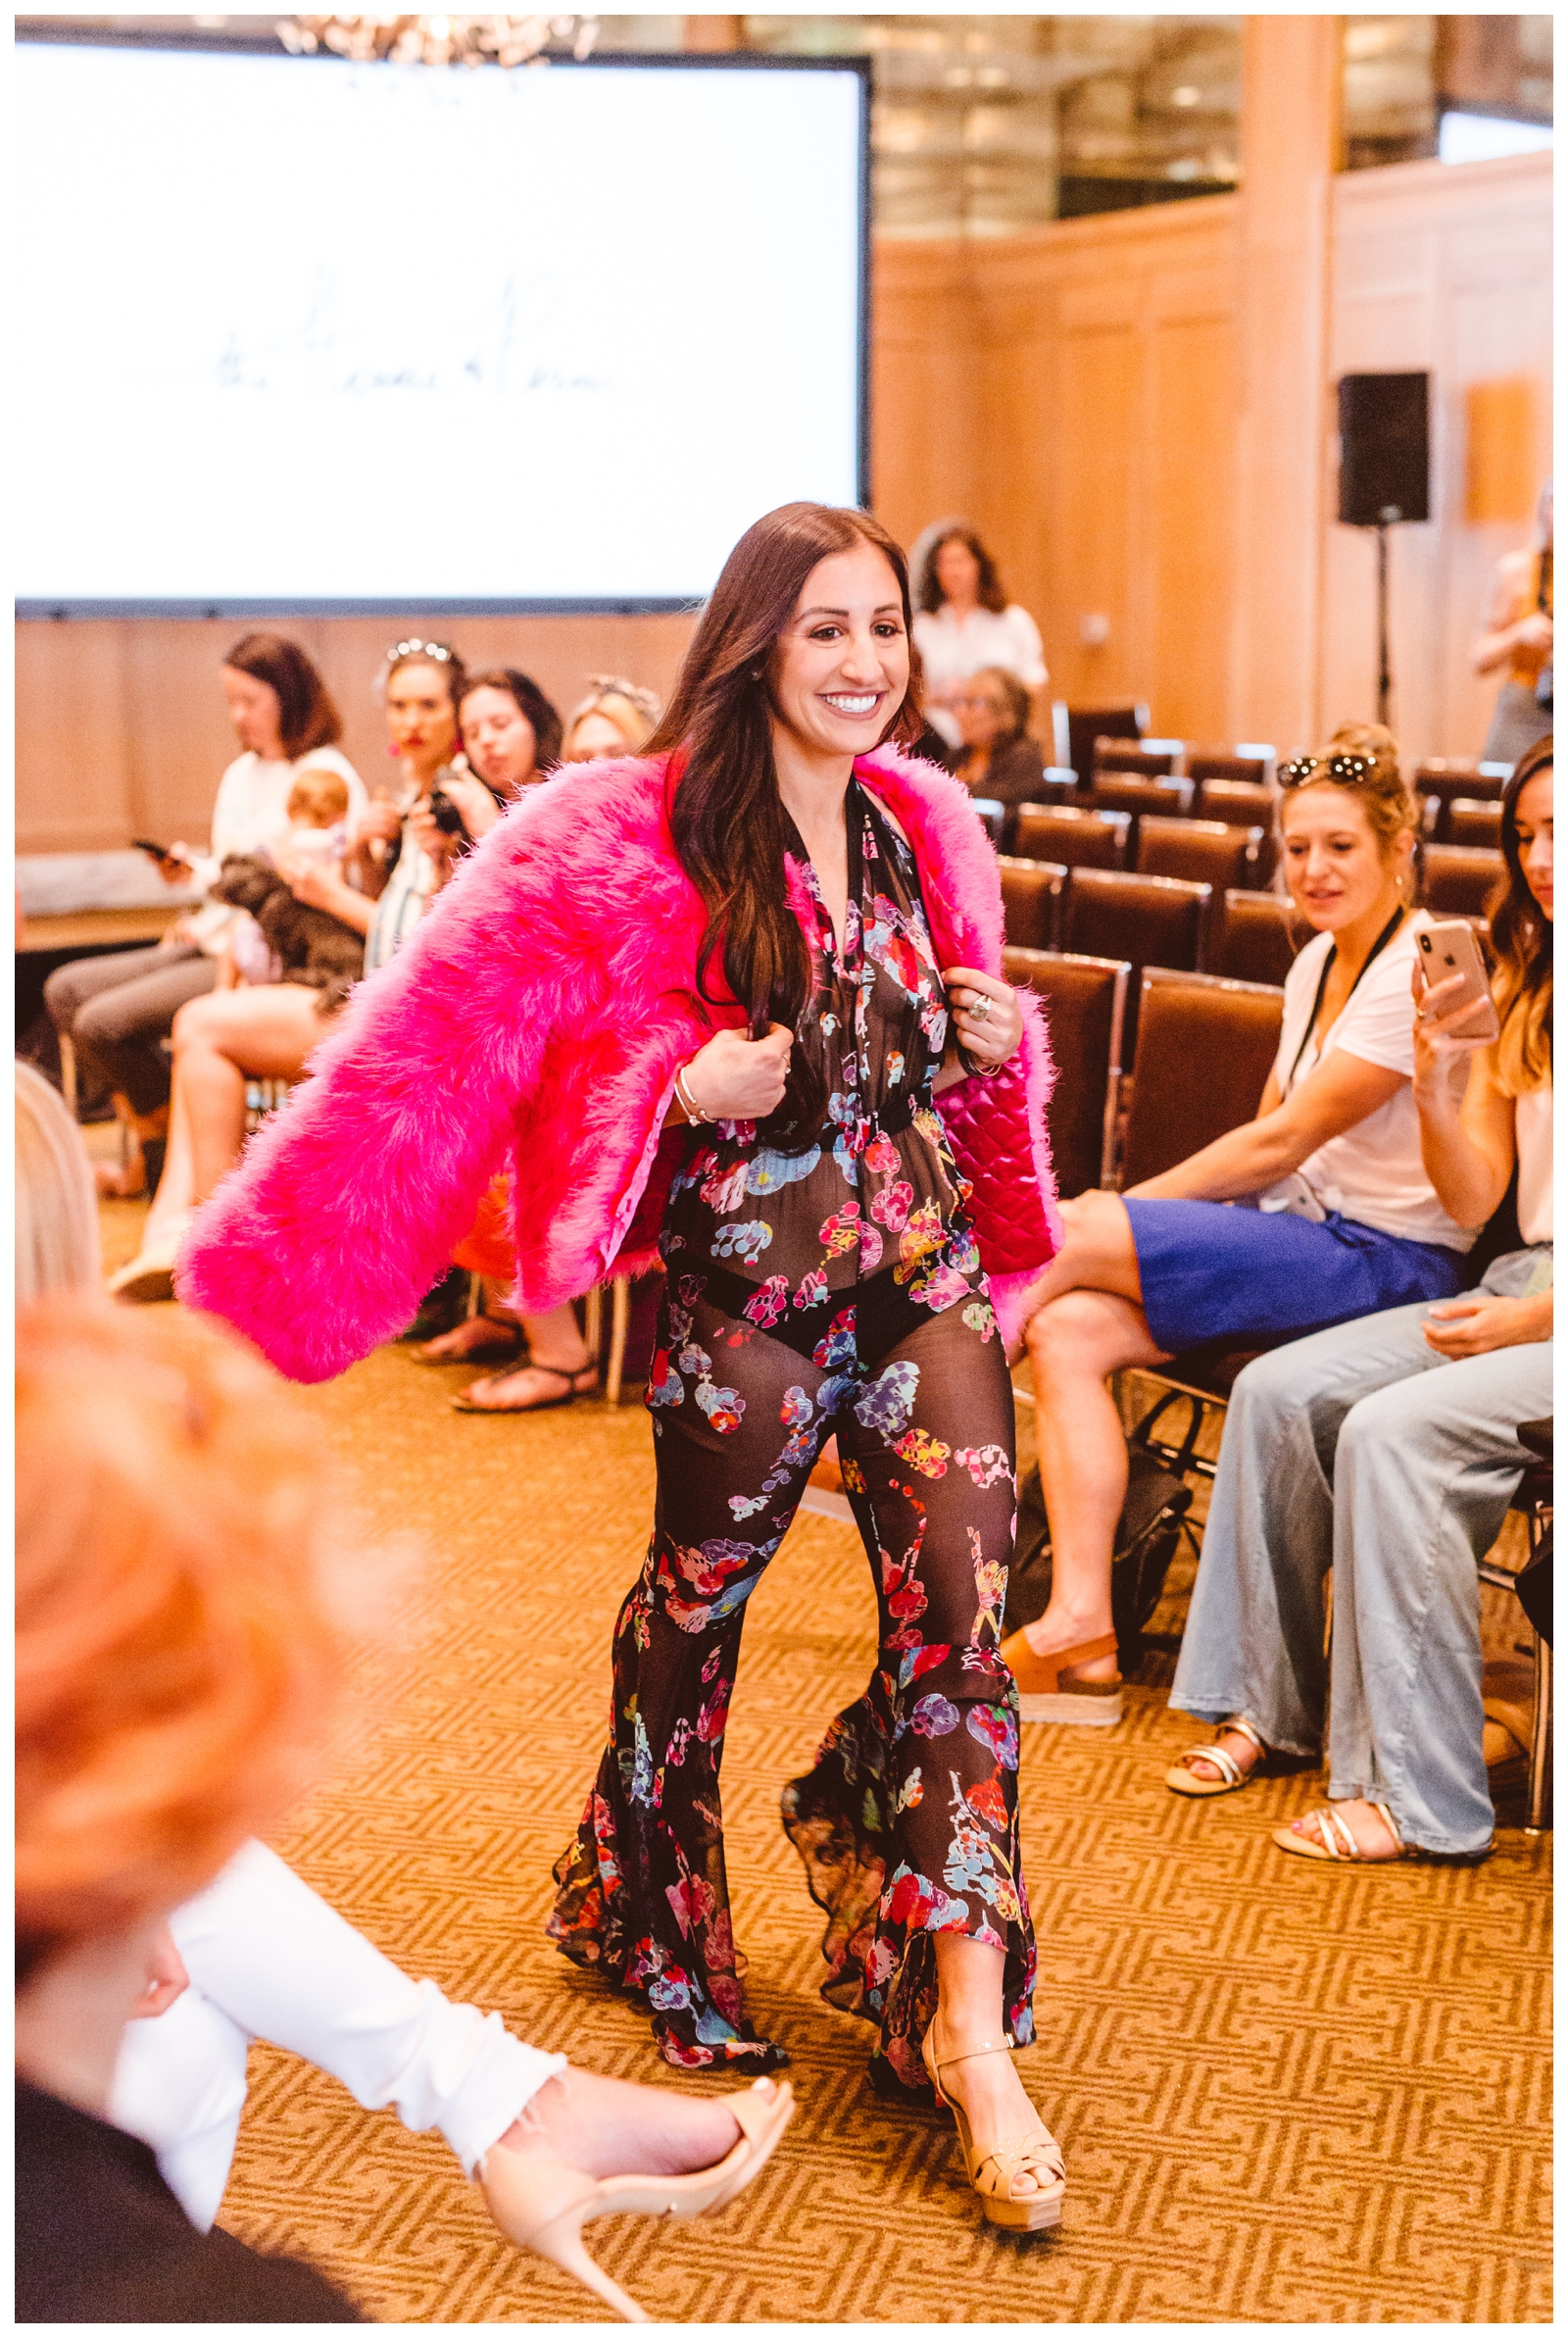 the-house-of-perna-runway-show-at-alt-summit-palm-springs-brooke-michelle-photography-5-photo.jpg